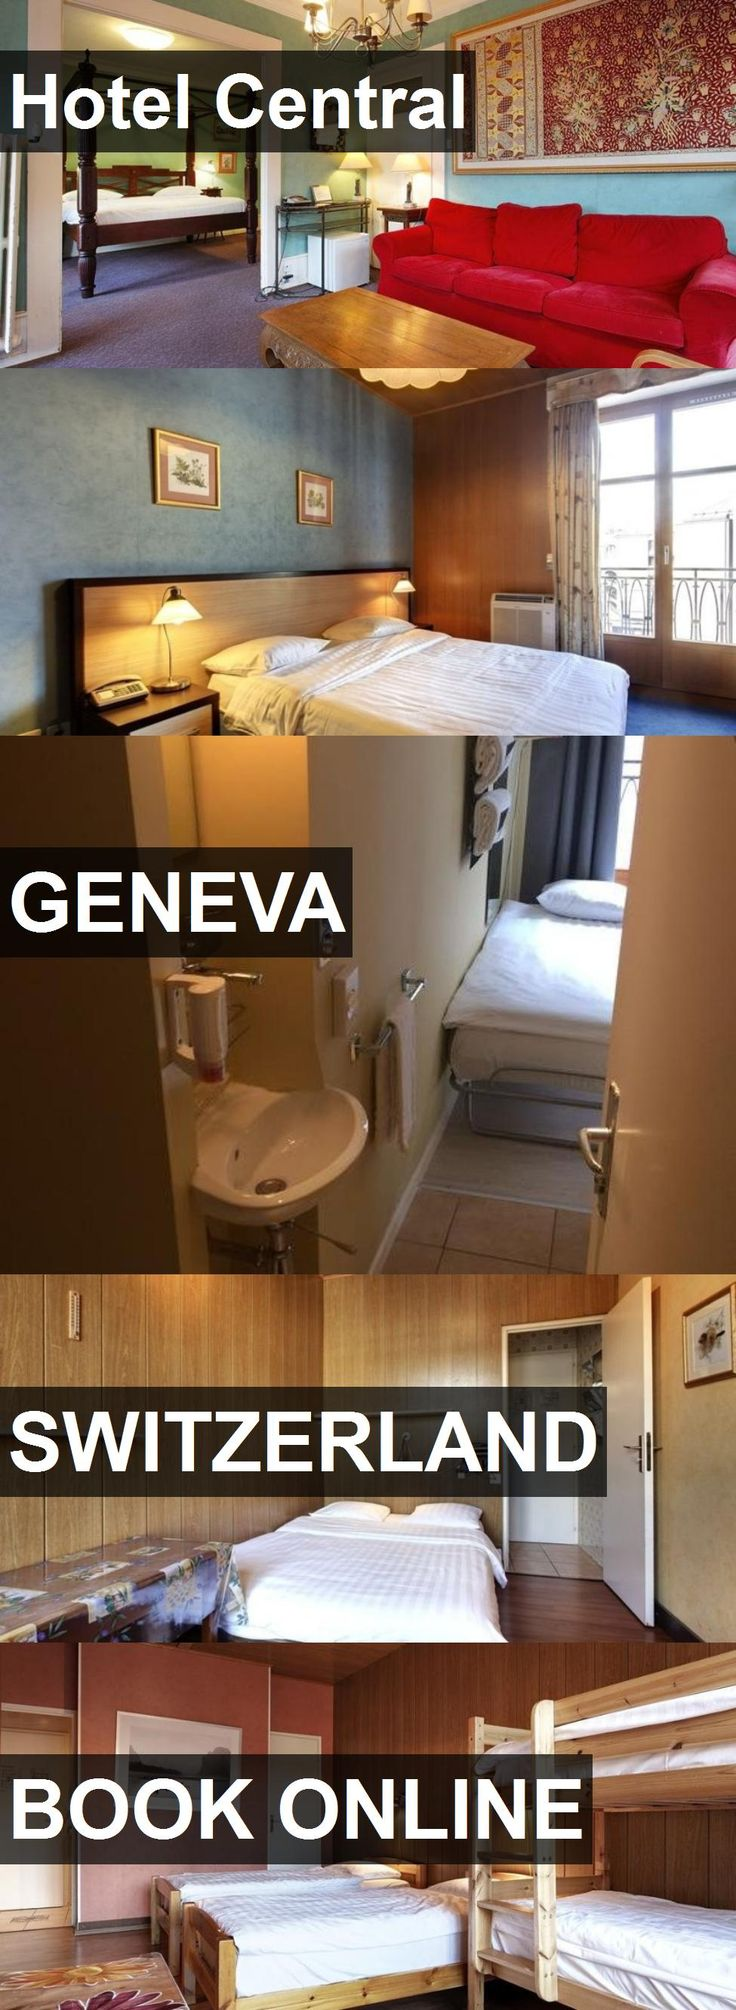 Hotel Central in Geneva, Switzerland. For more information, photos, reviews and best prices please follow the link. #Switzerland #Geneva #travel #vacation #hotel